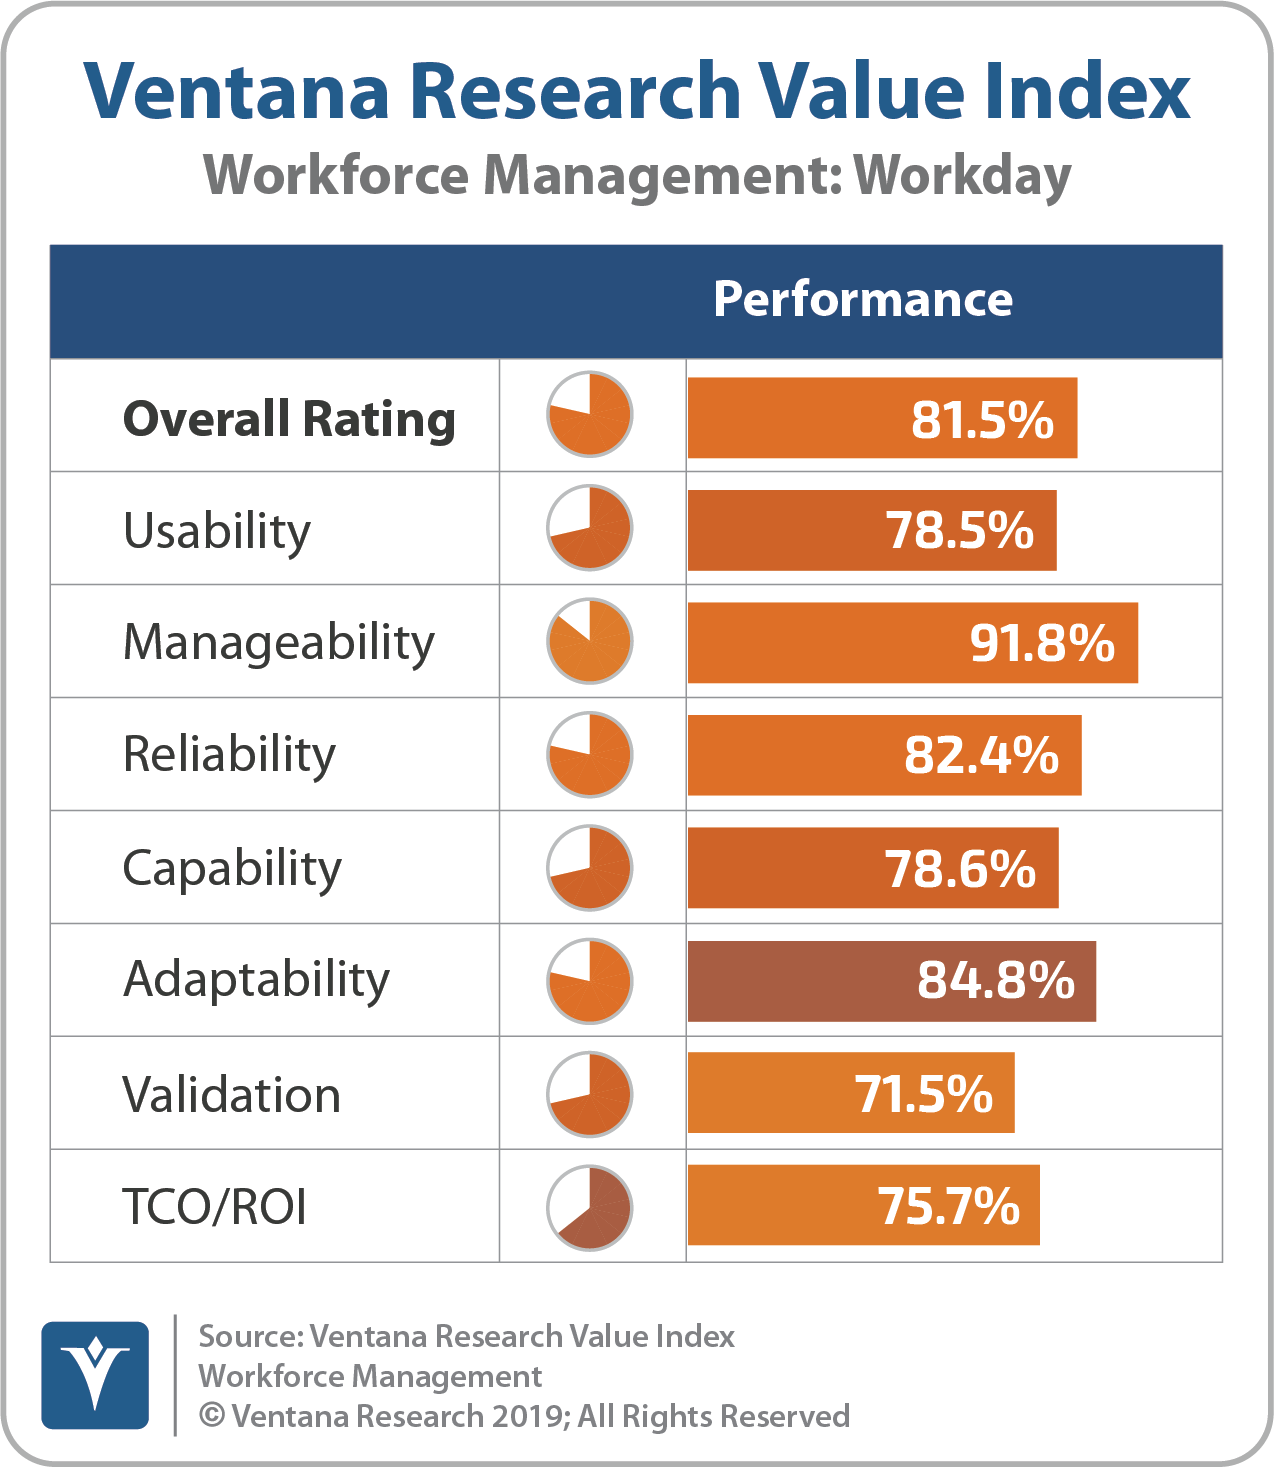 Ventana_Research_Value_Index_Workforce_Management_2019_Workday